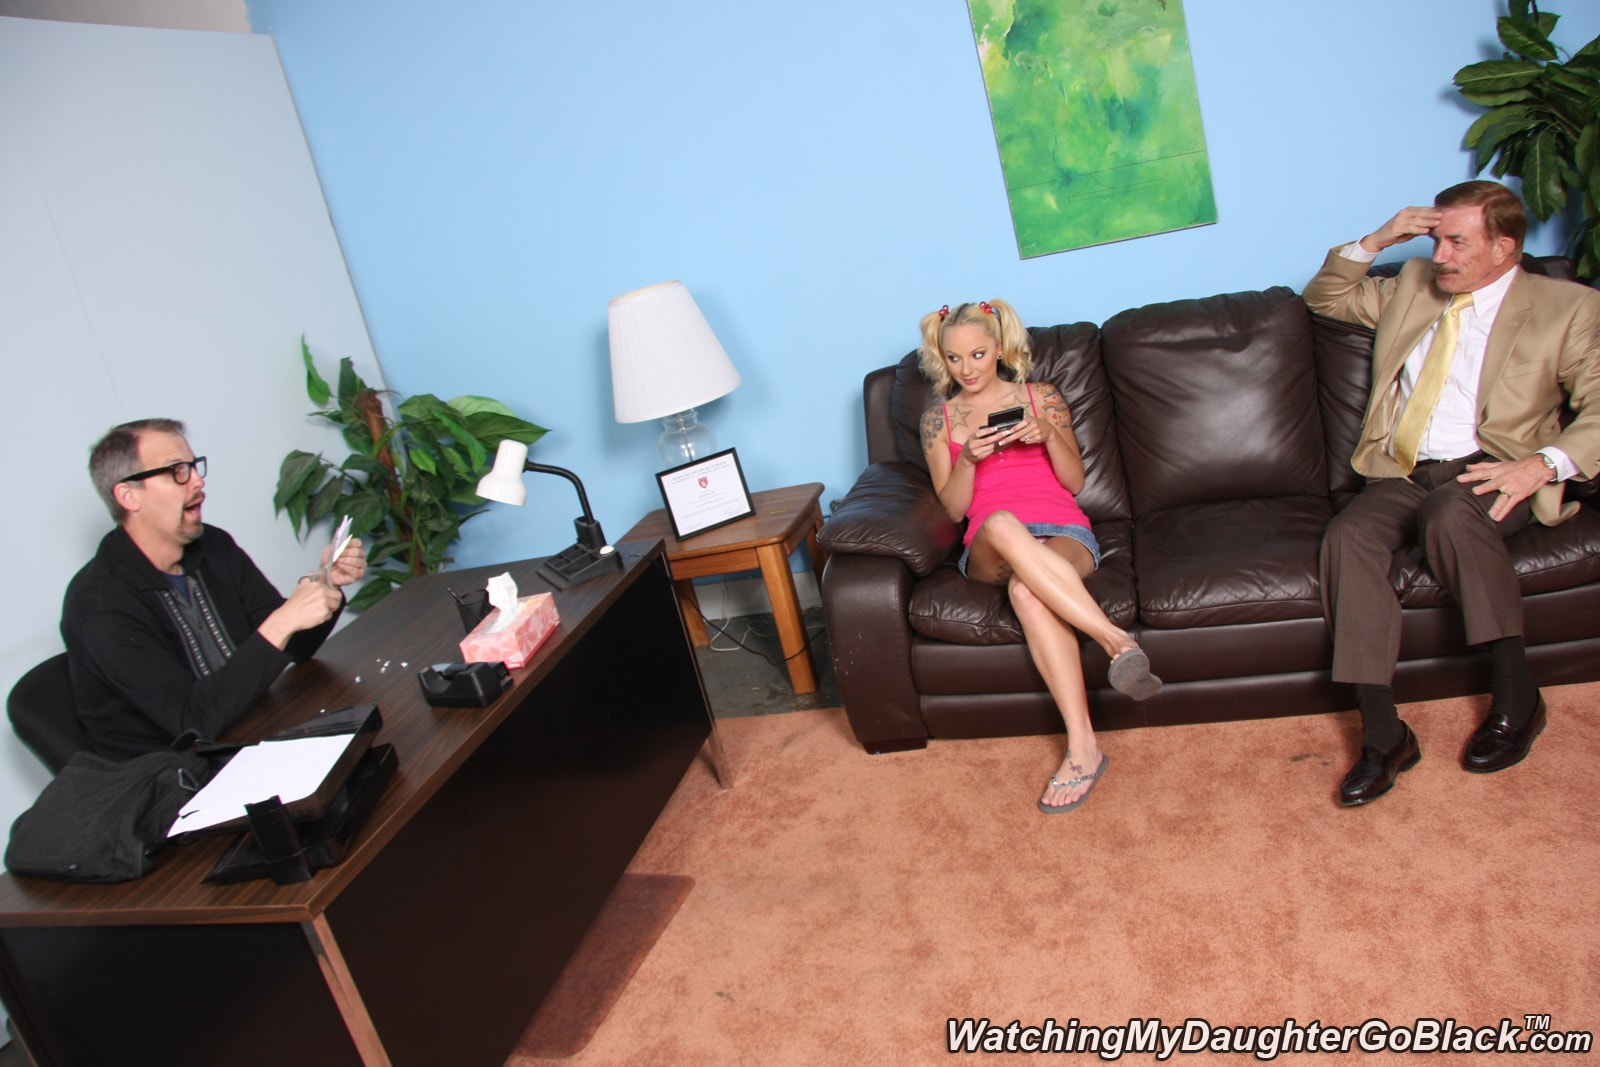 Dogfart 'Faye Runaway - Watching My Daughter Go Black' starring Faye Runaway (photo 3)